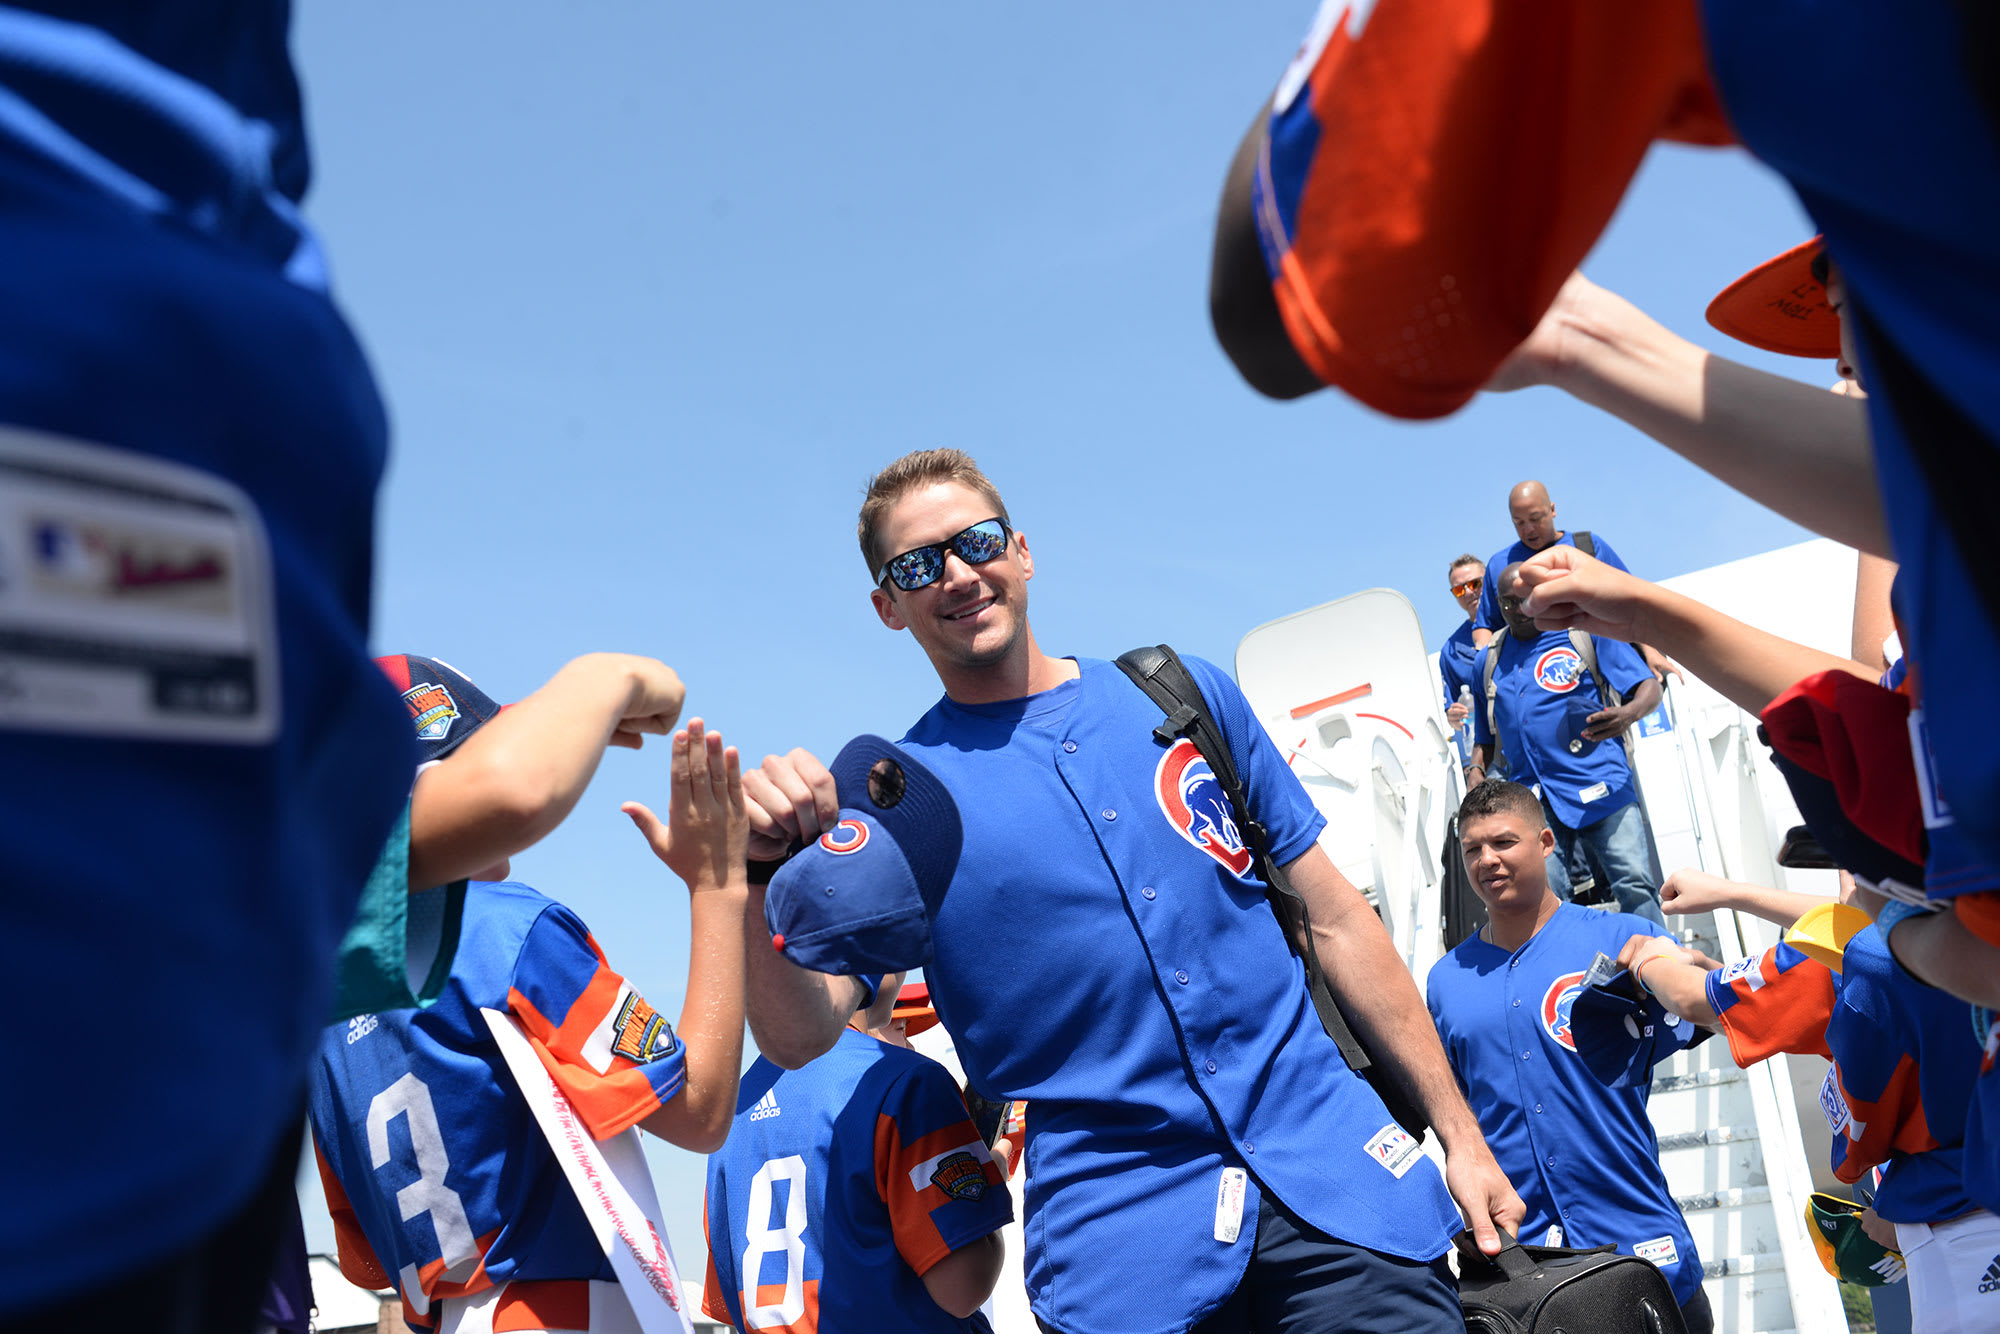 Cubs players walking off airplane